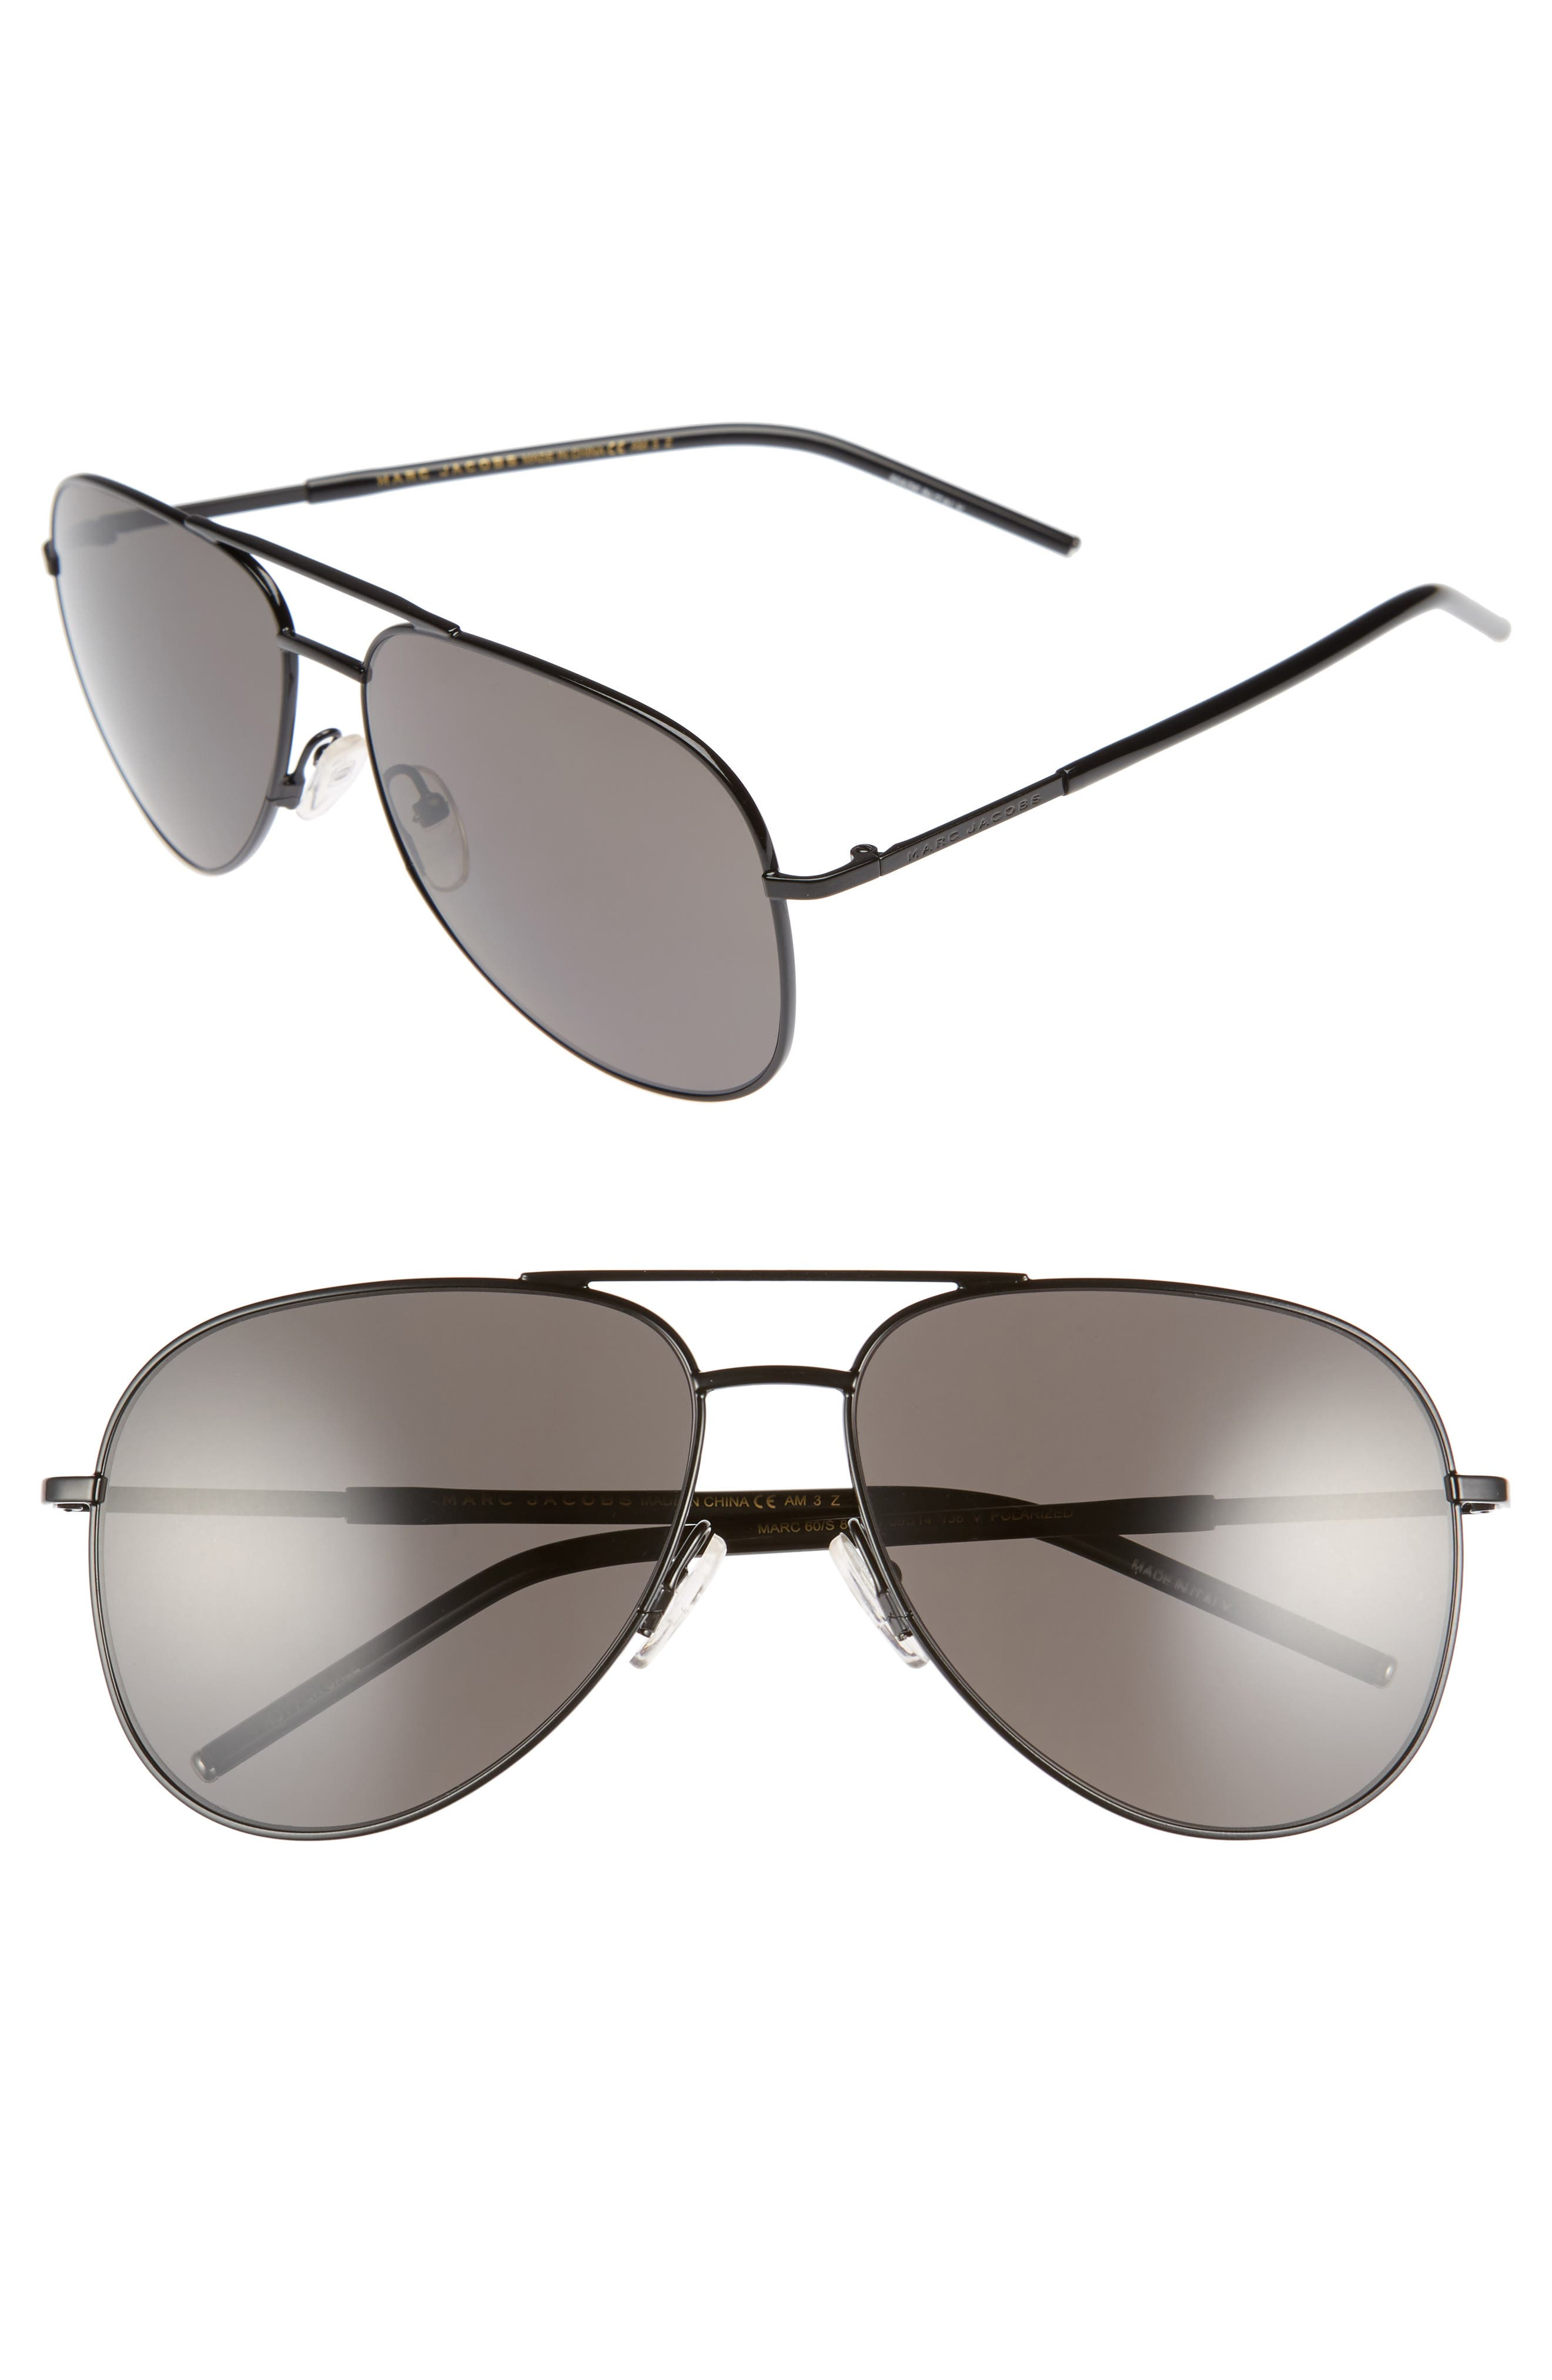 MARC JACOBS 59mm Gradient Polarized Aviator Sunglasses